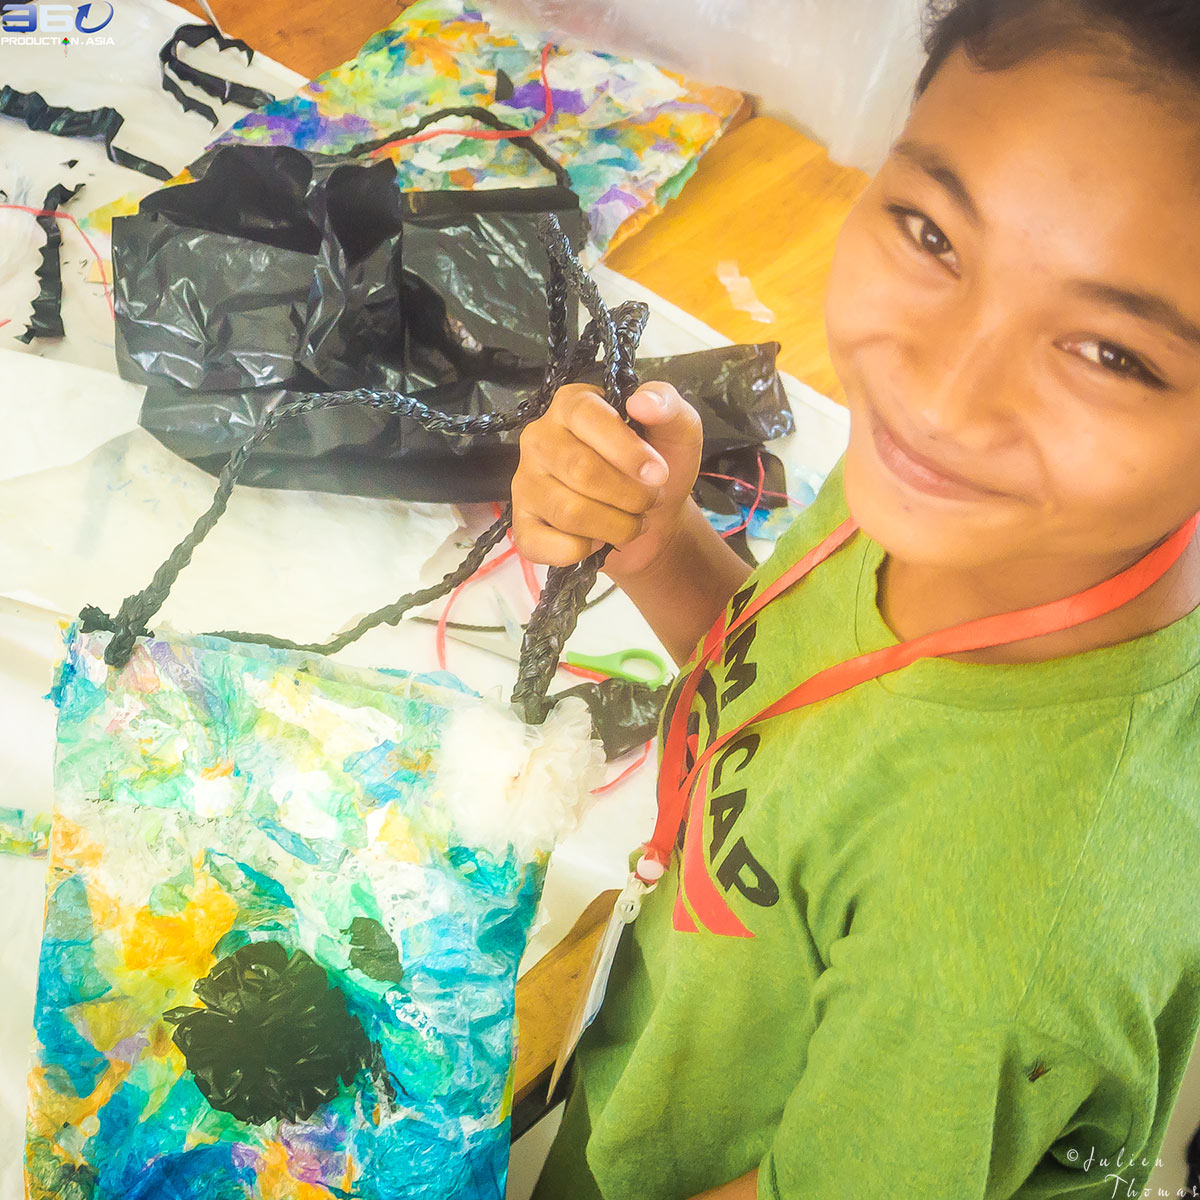 Schoolgirl with her children's purse crafted with plastic waste at school during a creative and ecological activity - course and project for children in Cambodia.